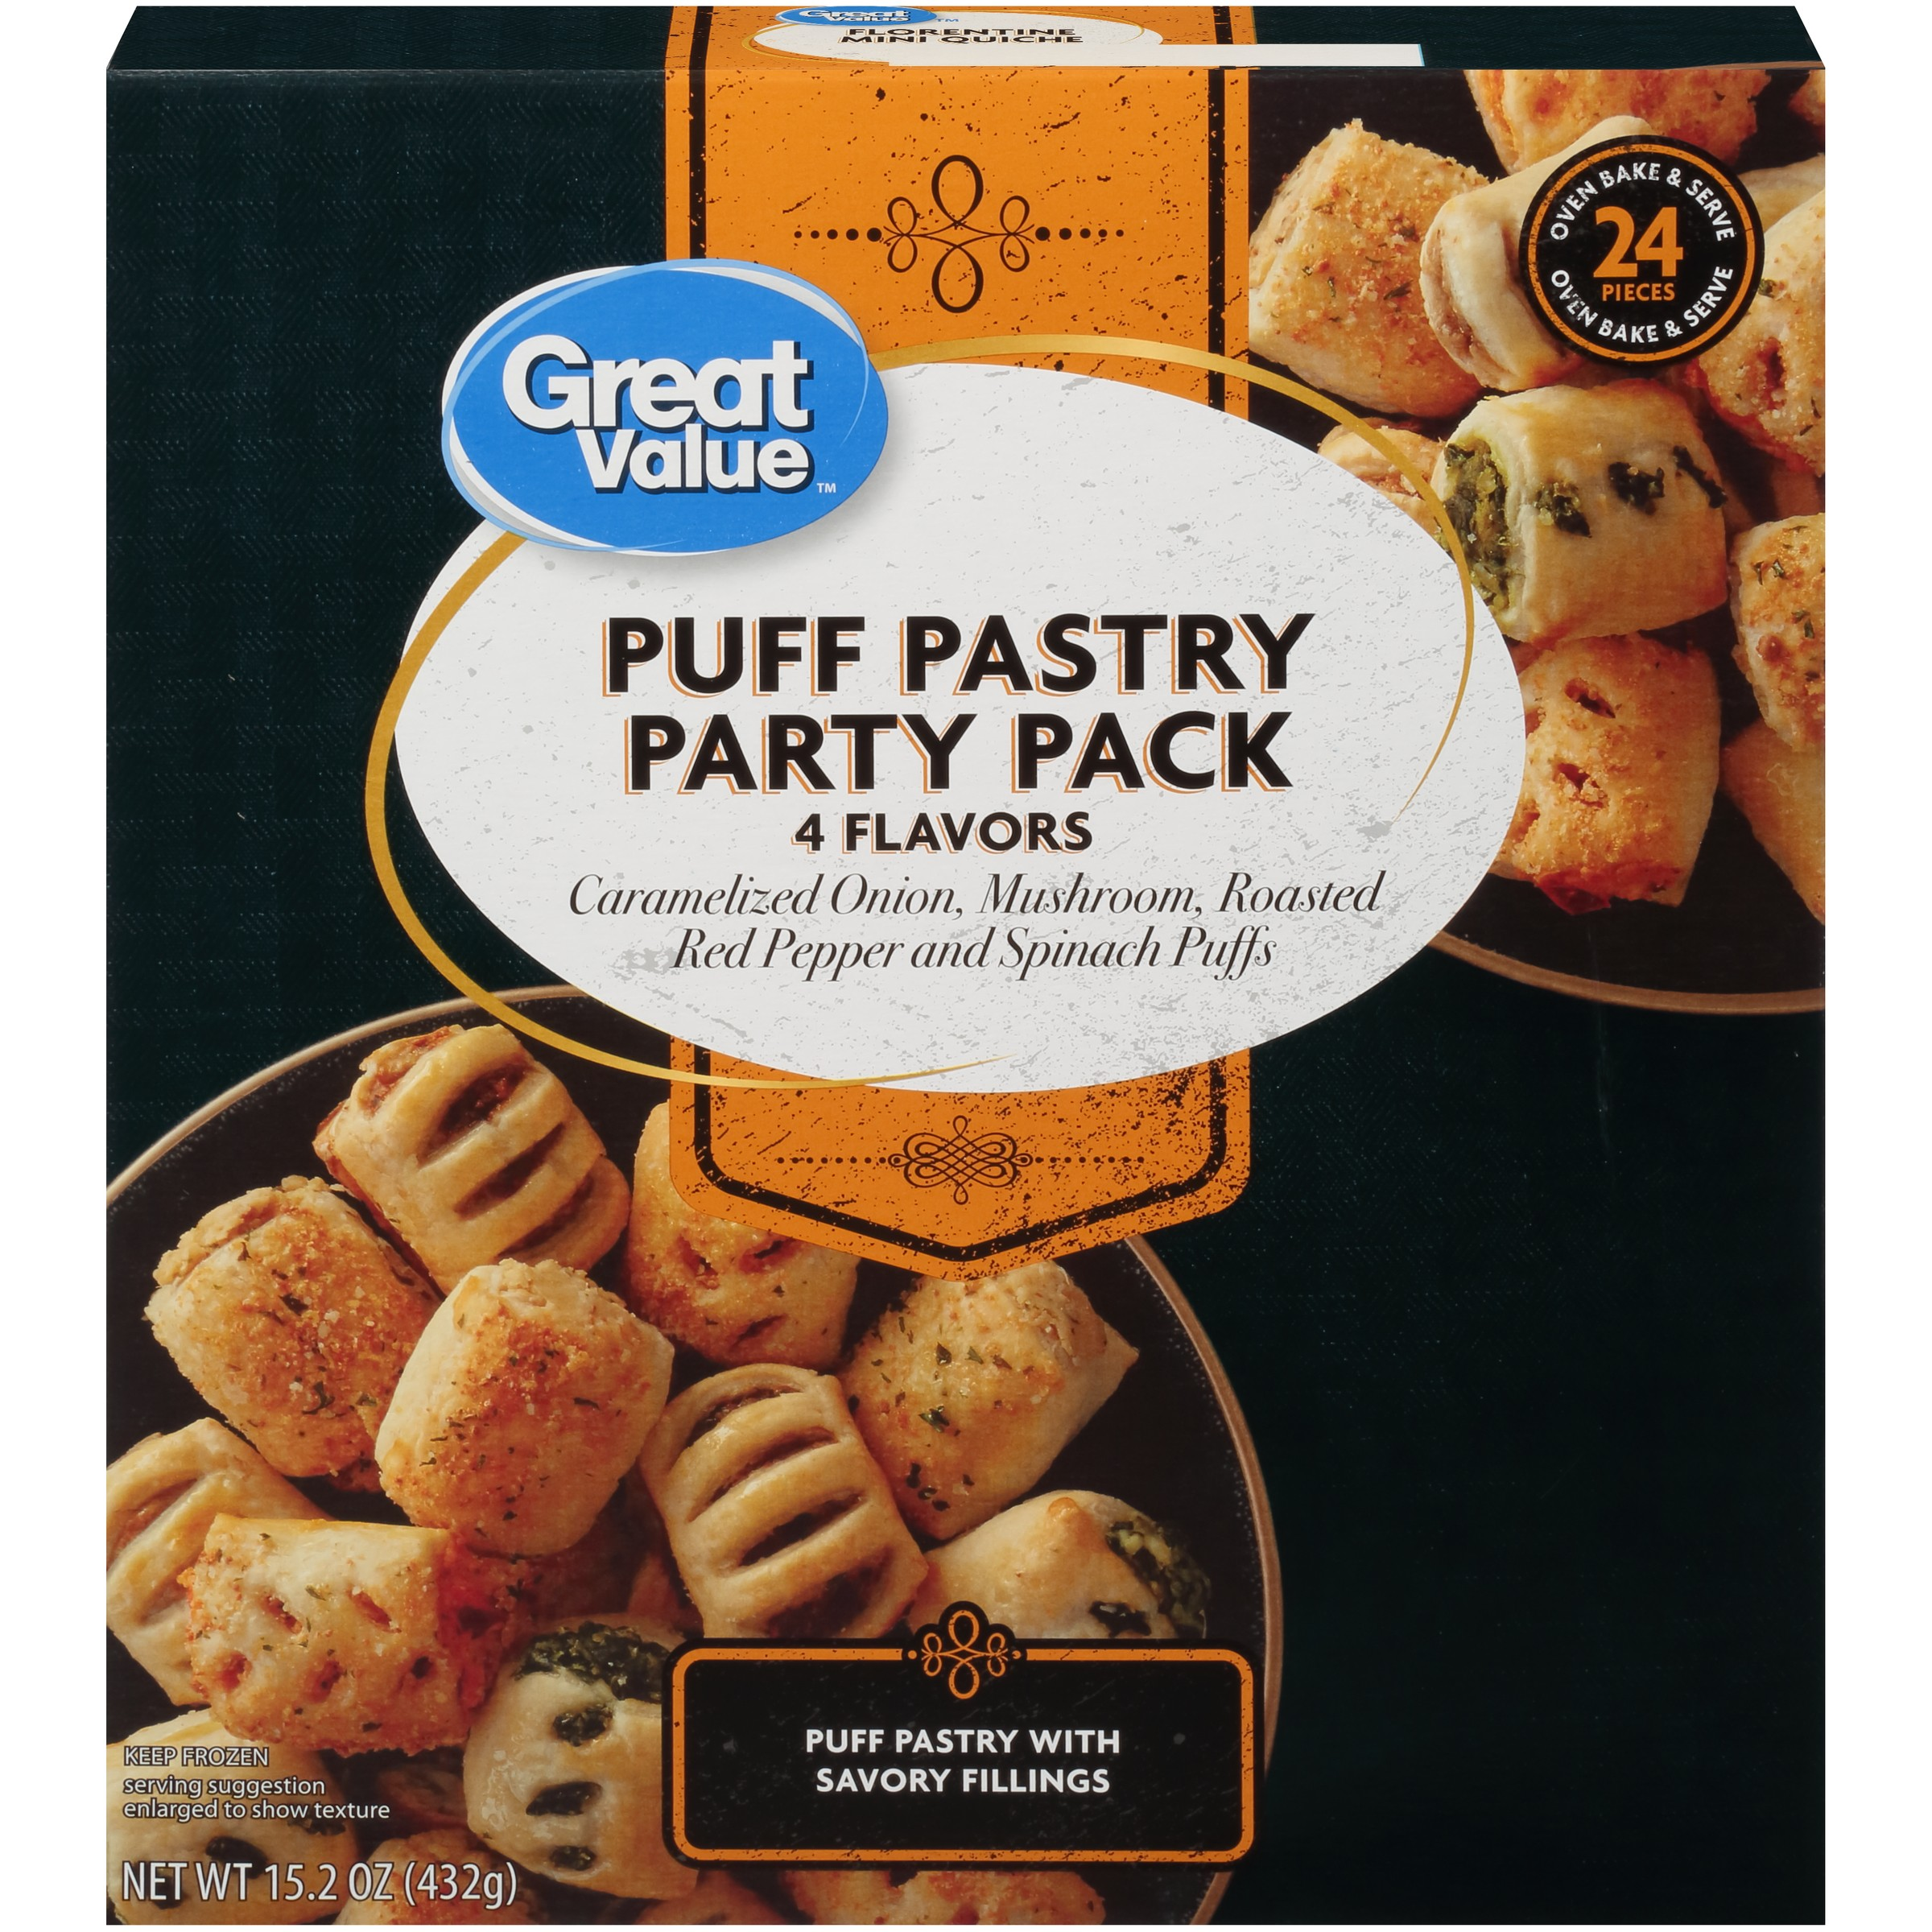 Great Value Pastry Party Pack 4 Flavors Puff 15 2 Oz 24 Count